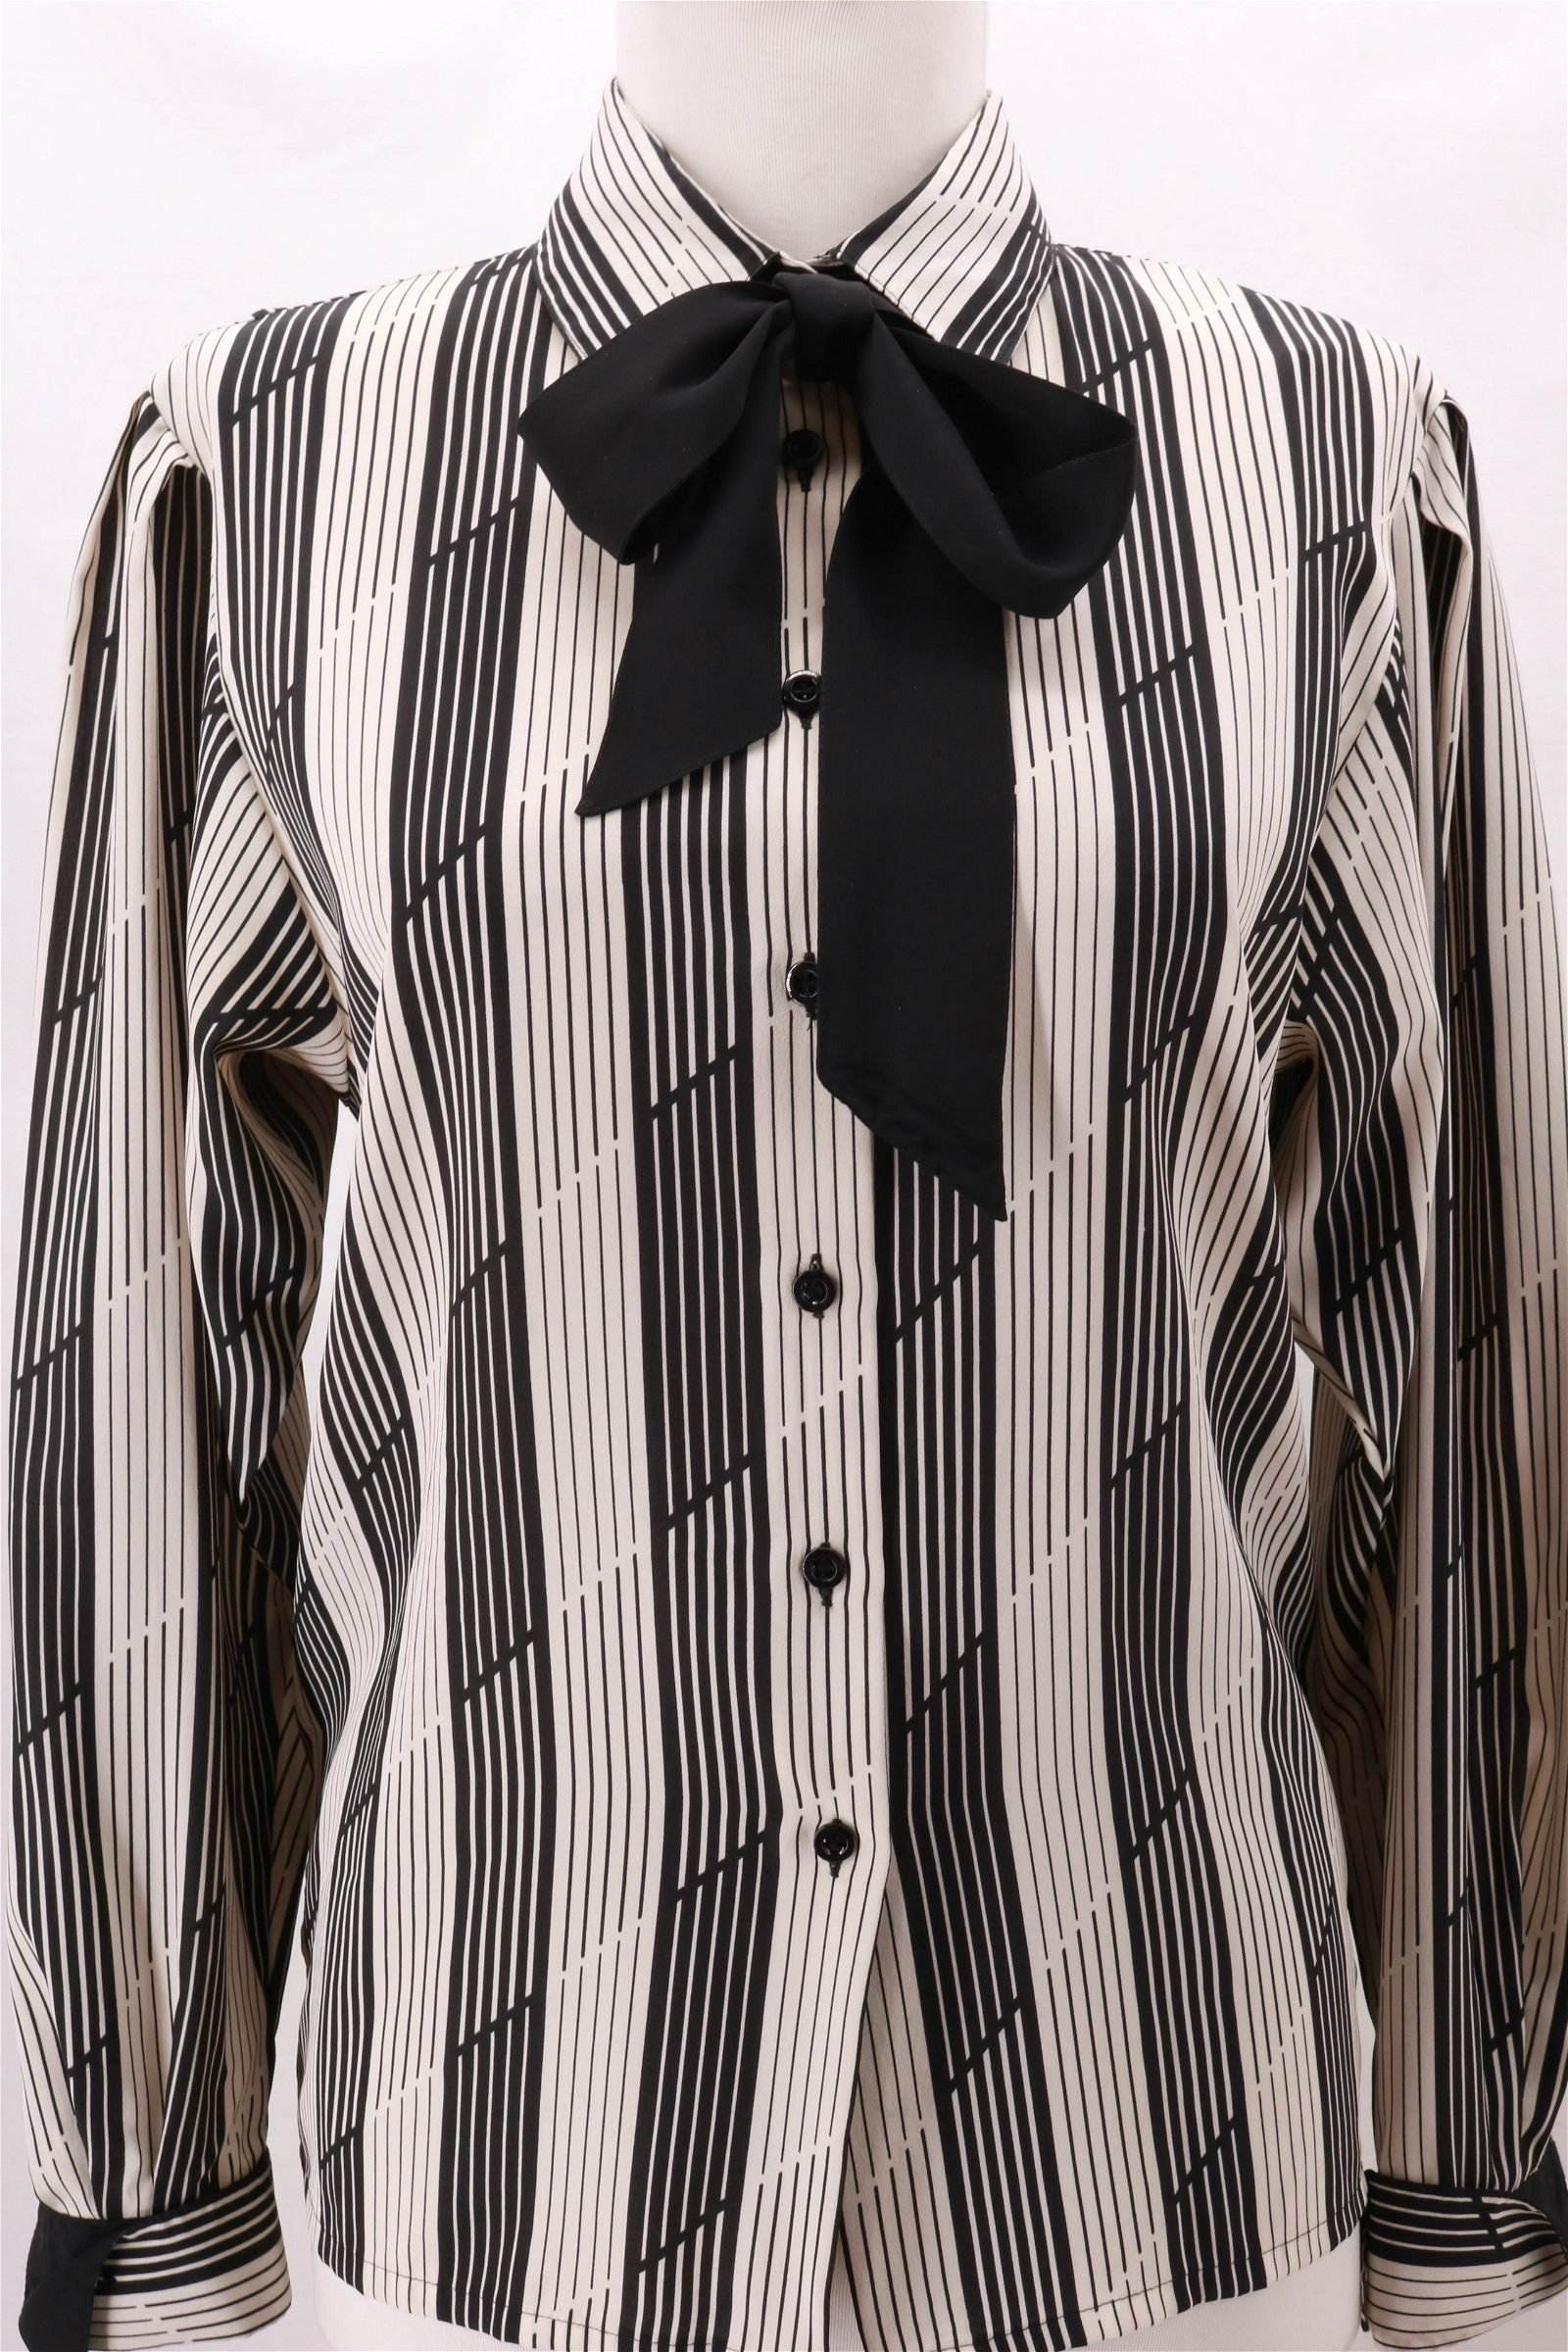 Vintage JAEGER Stripe Black and White Blouse with